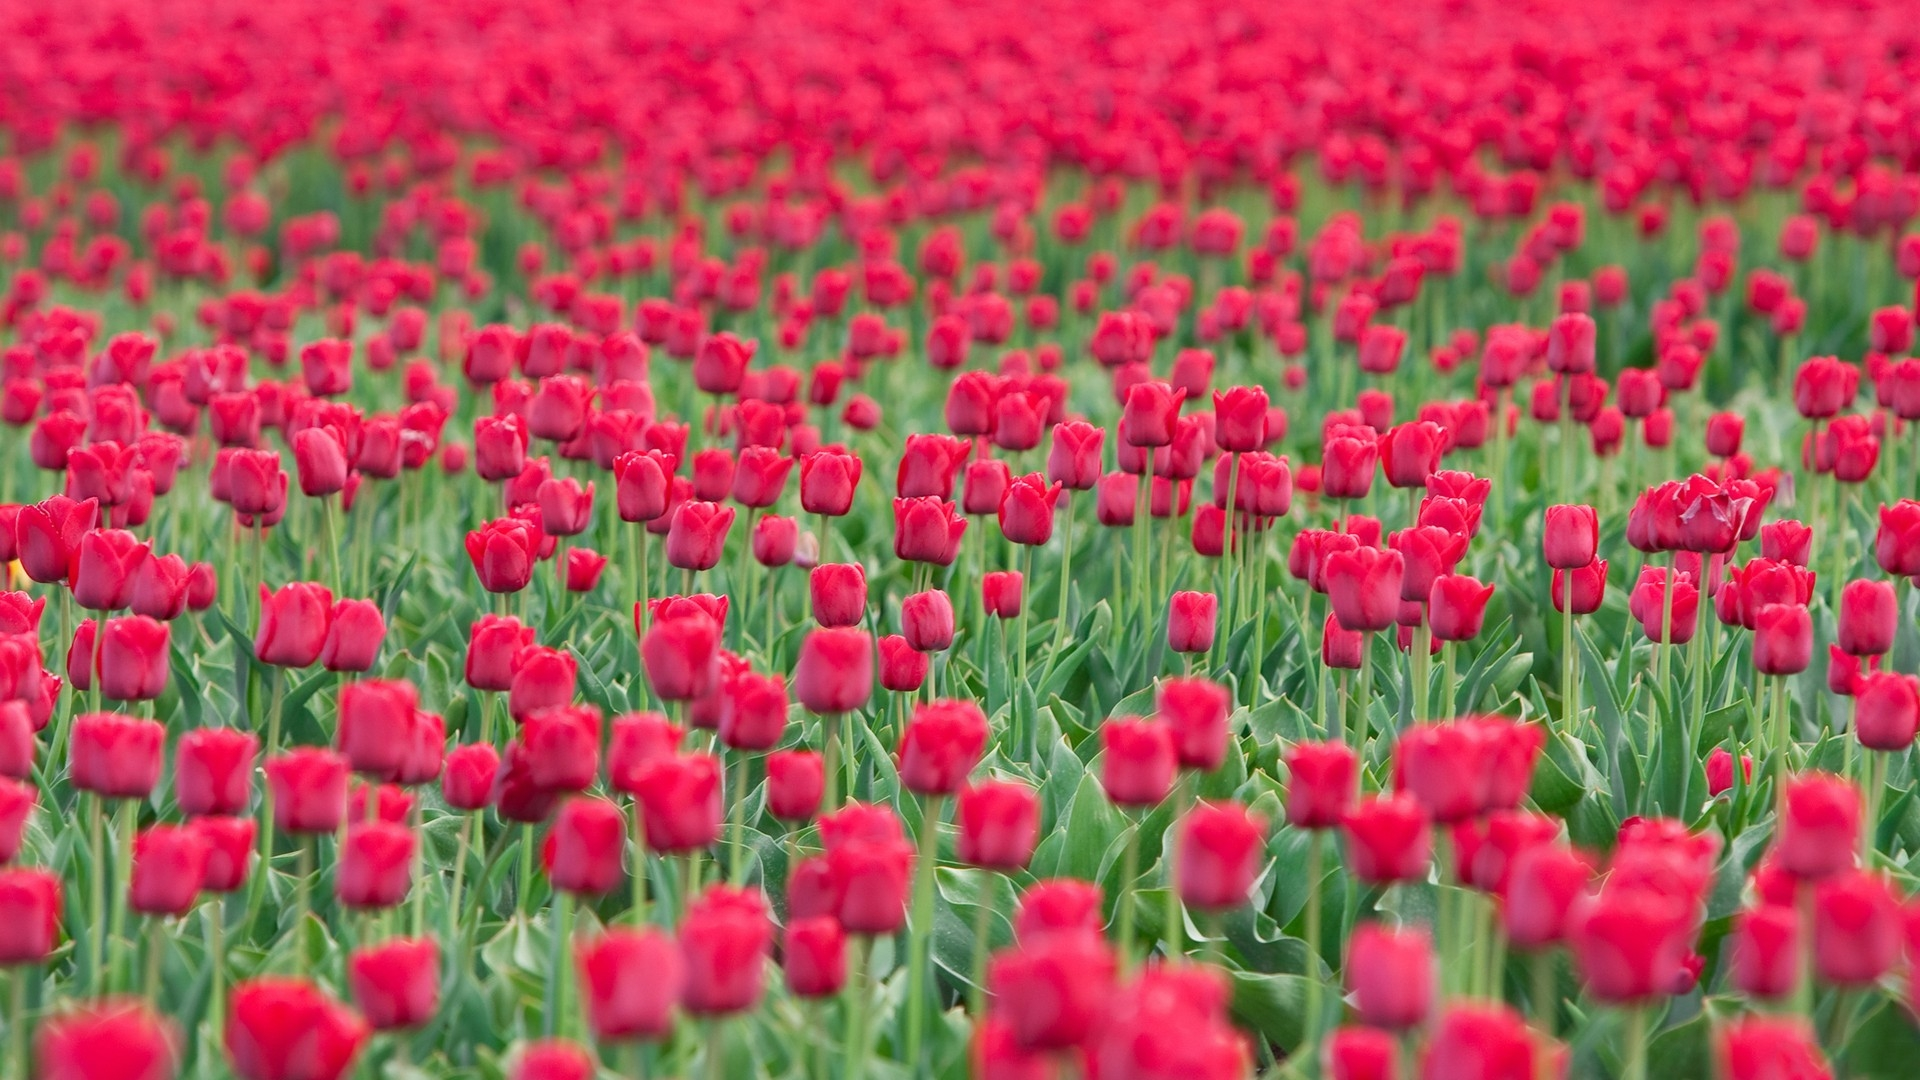 Download wallpaper 1920x1080 tulips flowers lots pink green tulips flowers lots voltagebd Choice Image